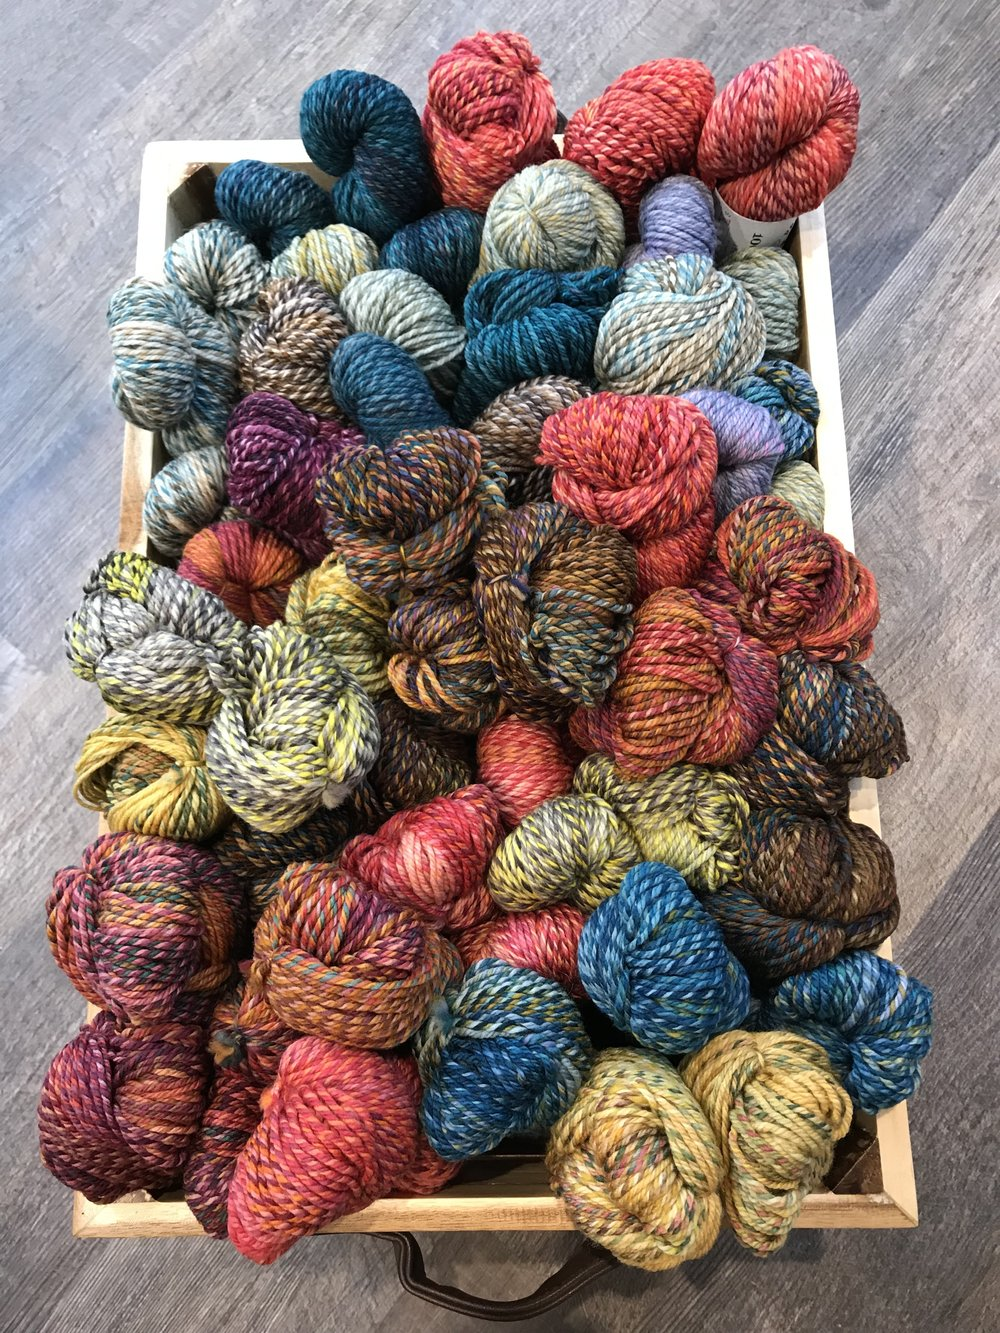 Spin Cycle! - Ok, so we are obsessed with all the beautiful colors by the women of Spin Cycle. We are so excited to have Dream State & Dyed in the Wool in store. Our supplies can be limited based on its popularity, but we do our best to have it in stock.